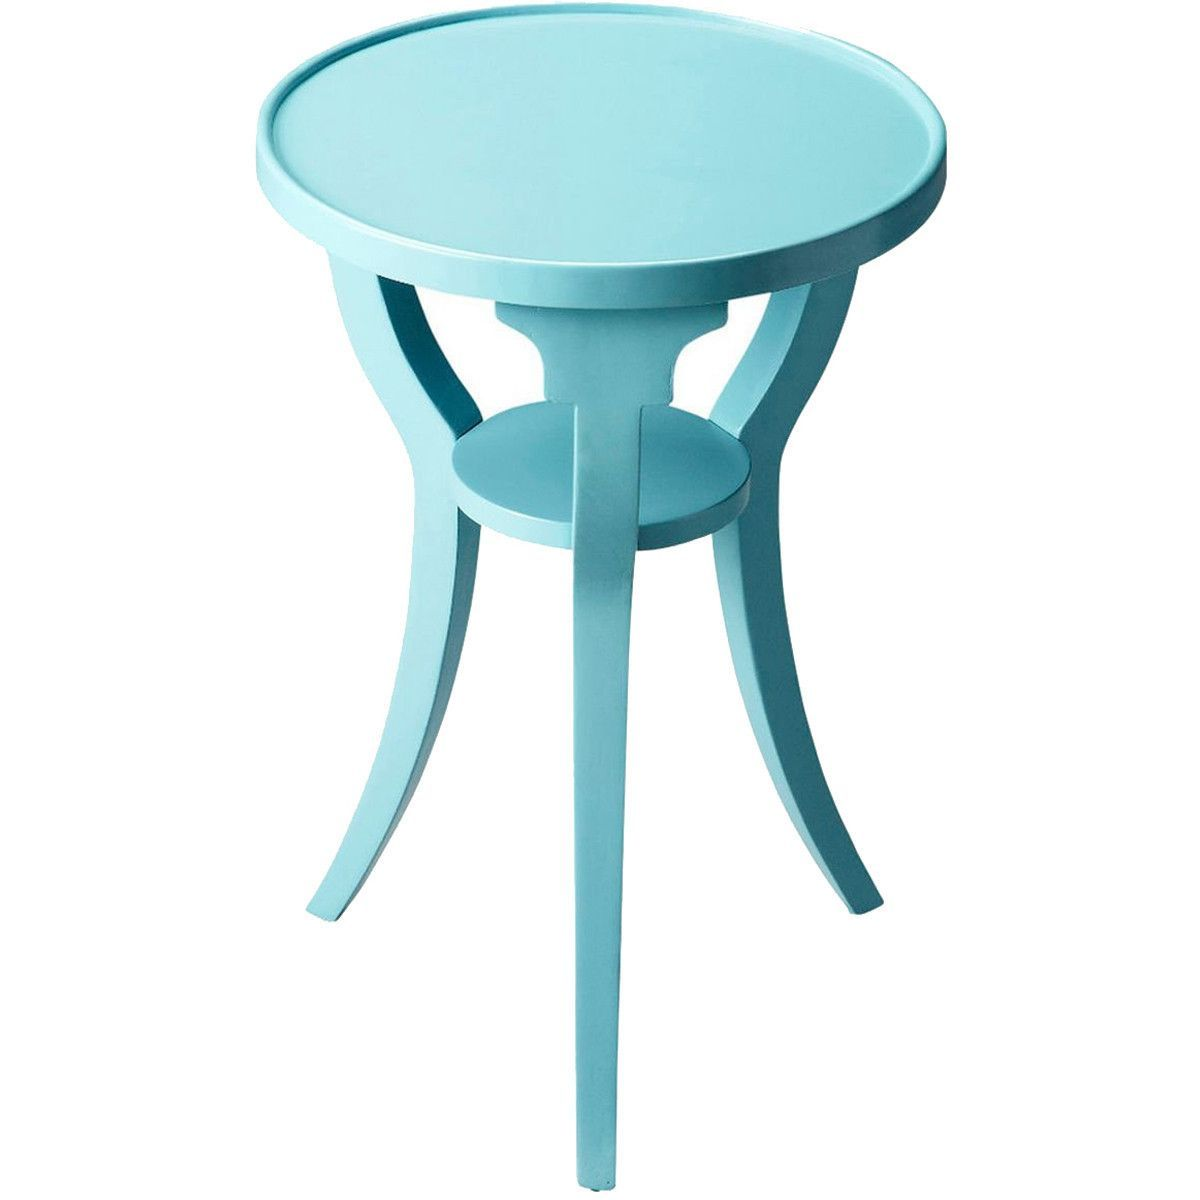 butler specialty masterpiece dalton sky blue round accent table winsome furniture patio umbrella yellow chocolate brown end tables foot console cordless led lamp target threshold